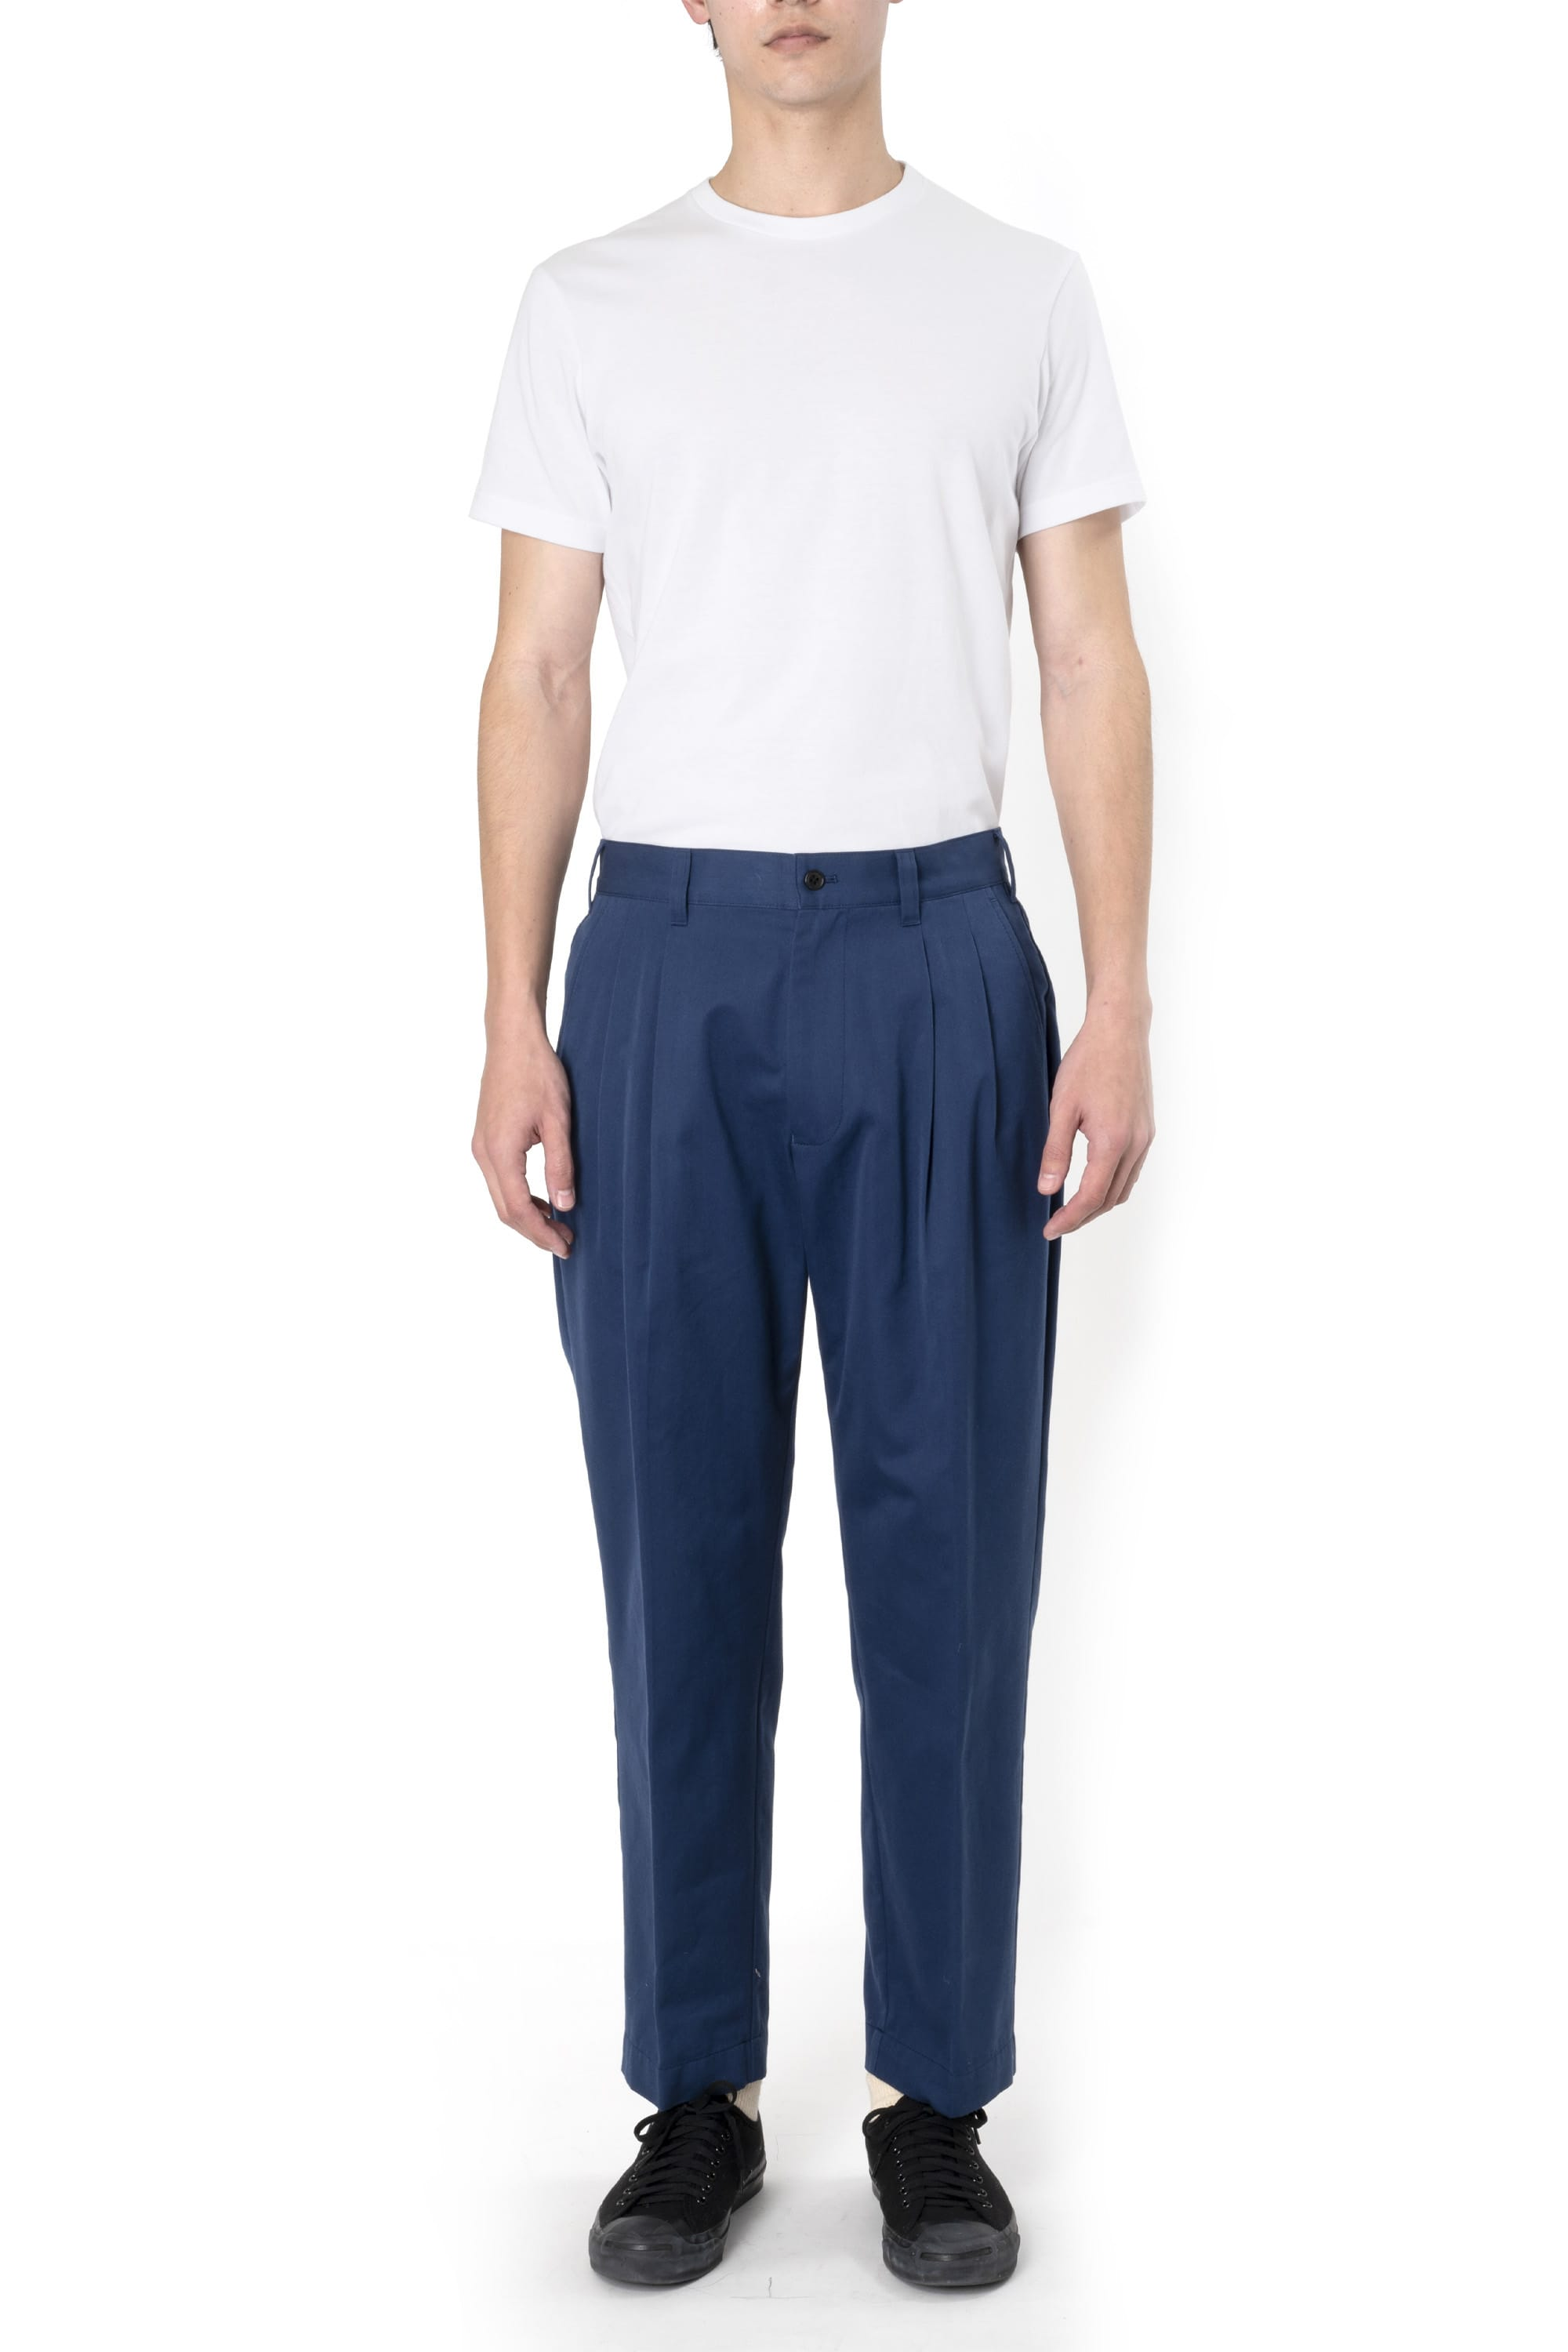 POLYESTER COTTON TWILL SETUP PANTS